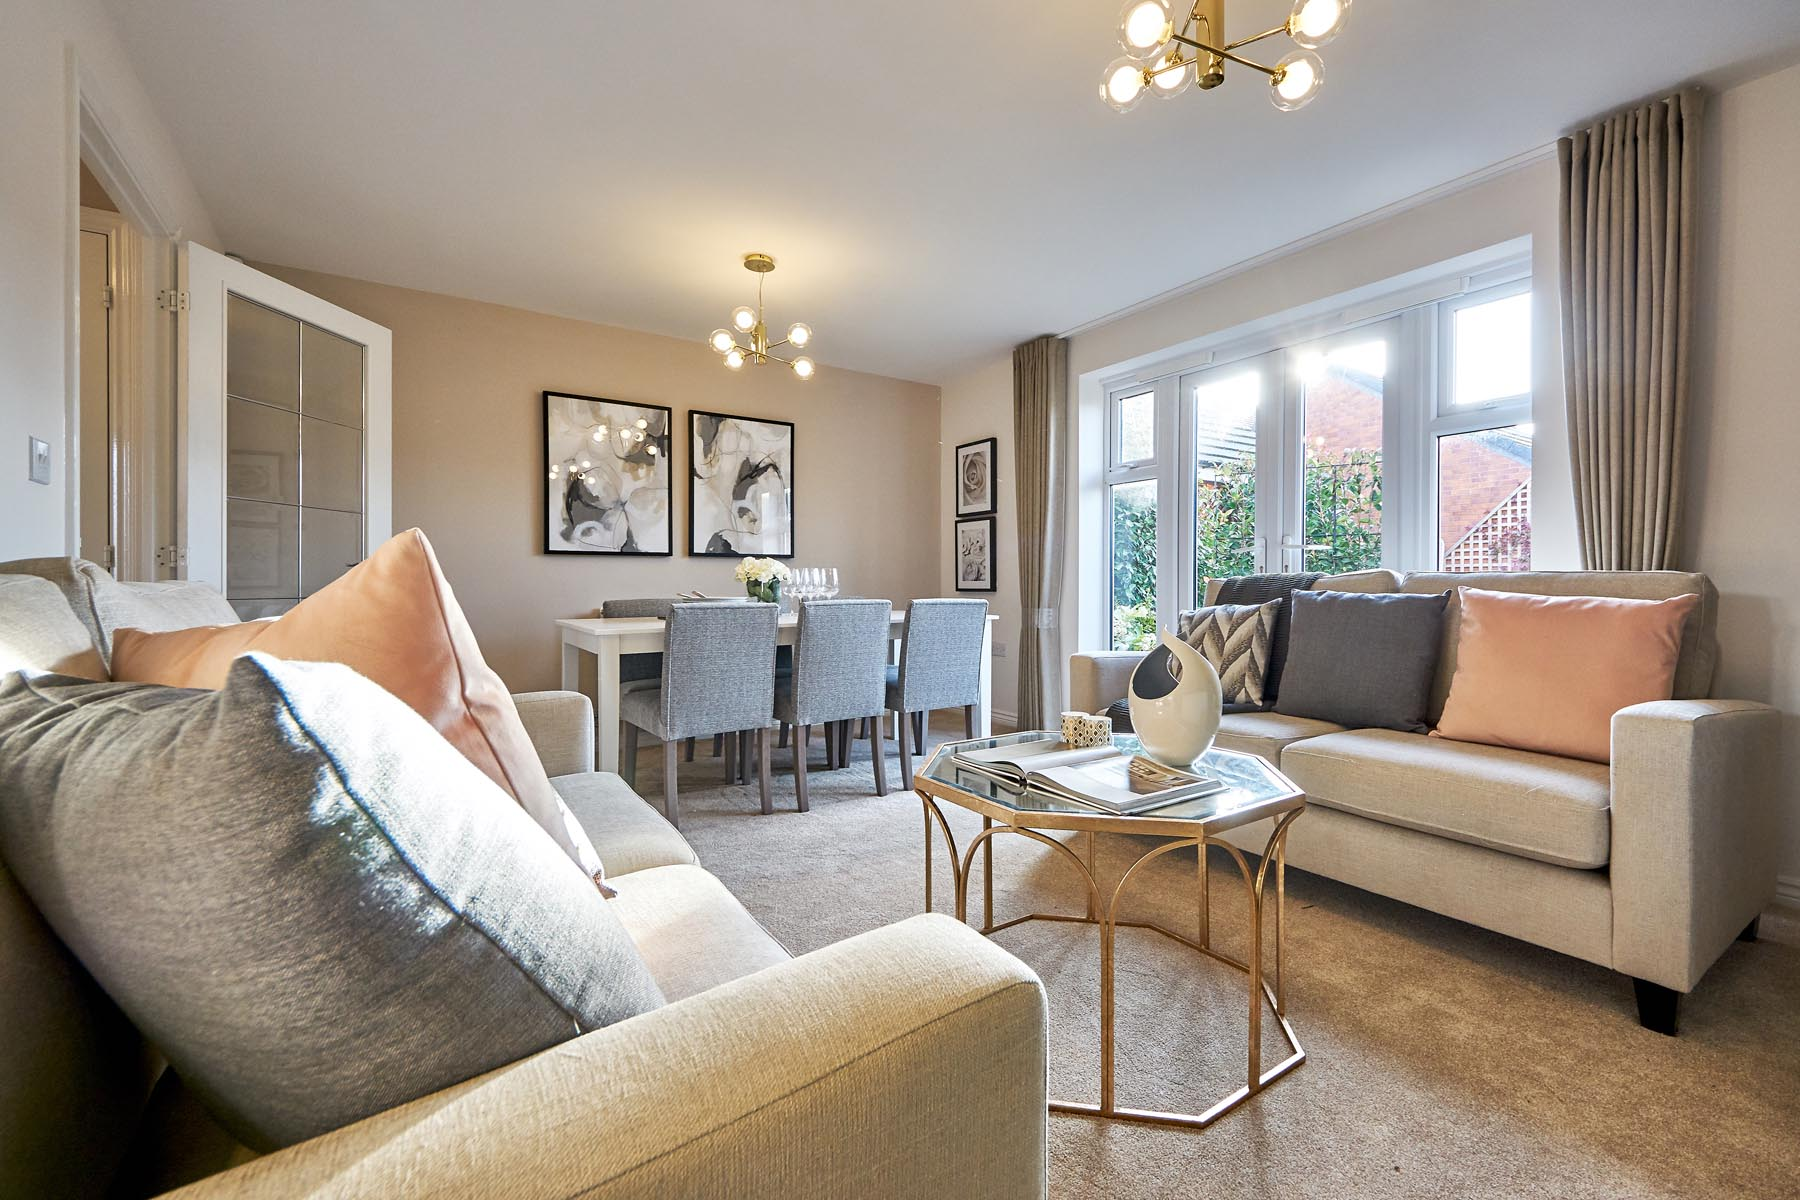 TW Exeter - Buckingham Heights - Flatford example living room 2